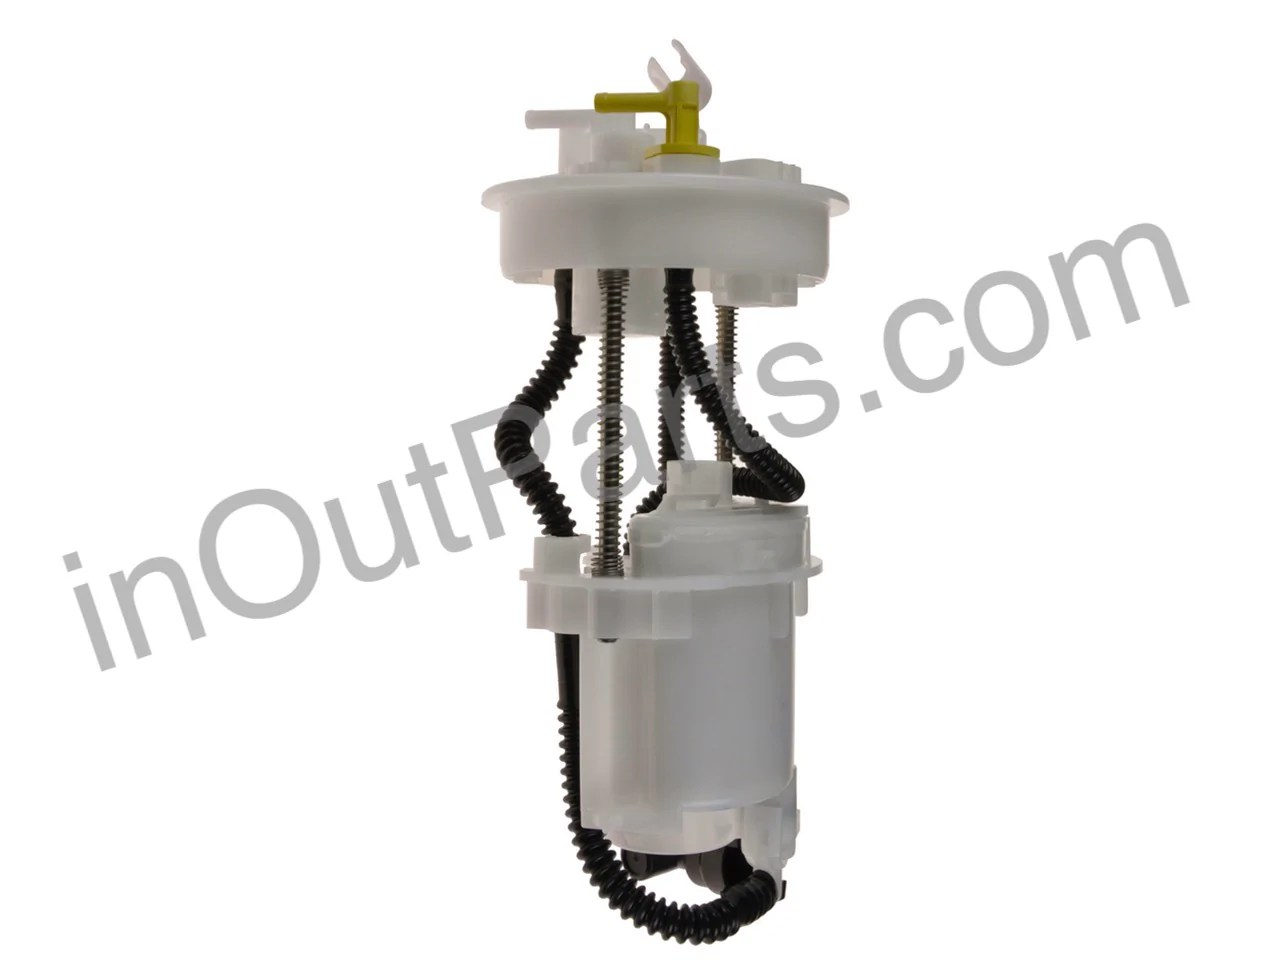 small resolution of fuel filter fits honda fit jazz 2002 2003 2004 2005 2006 2007 2008 inout parts